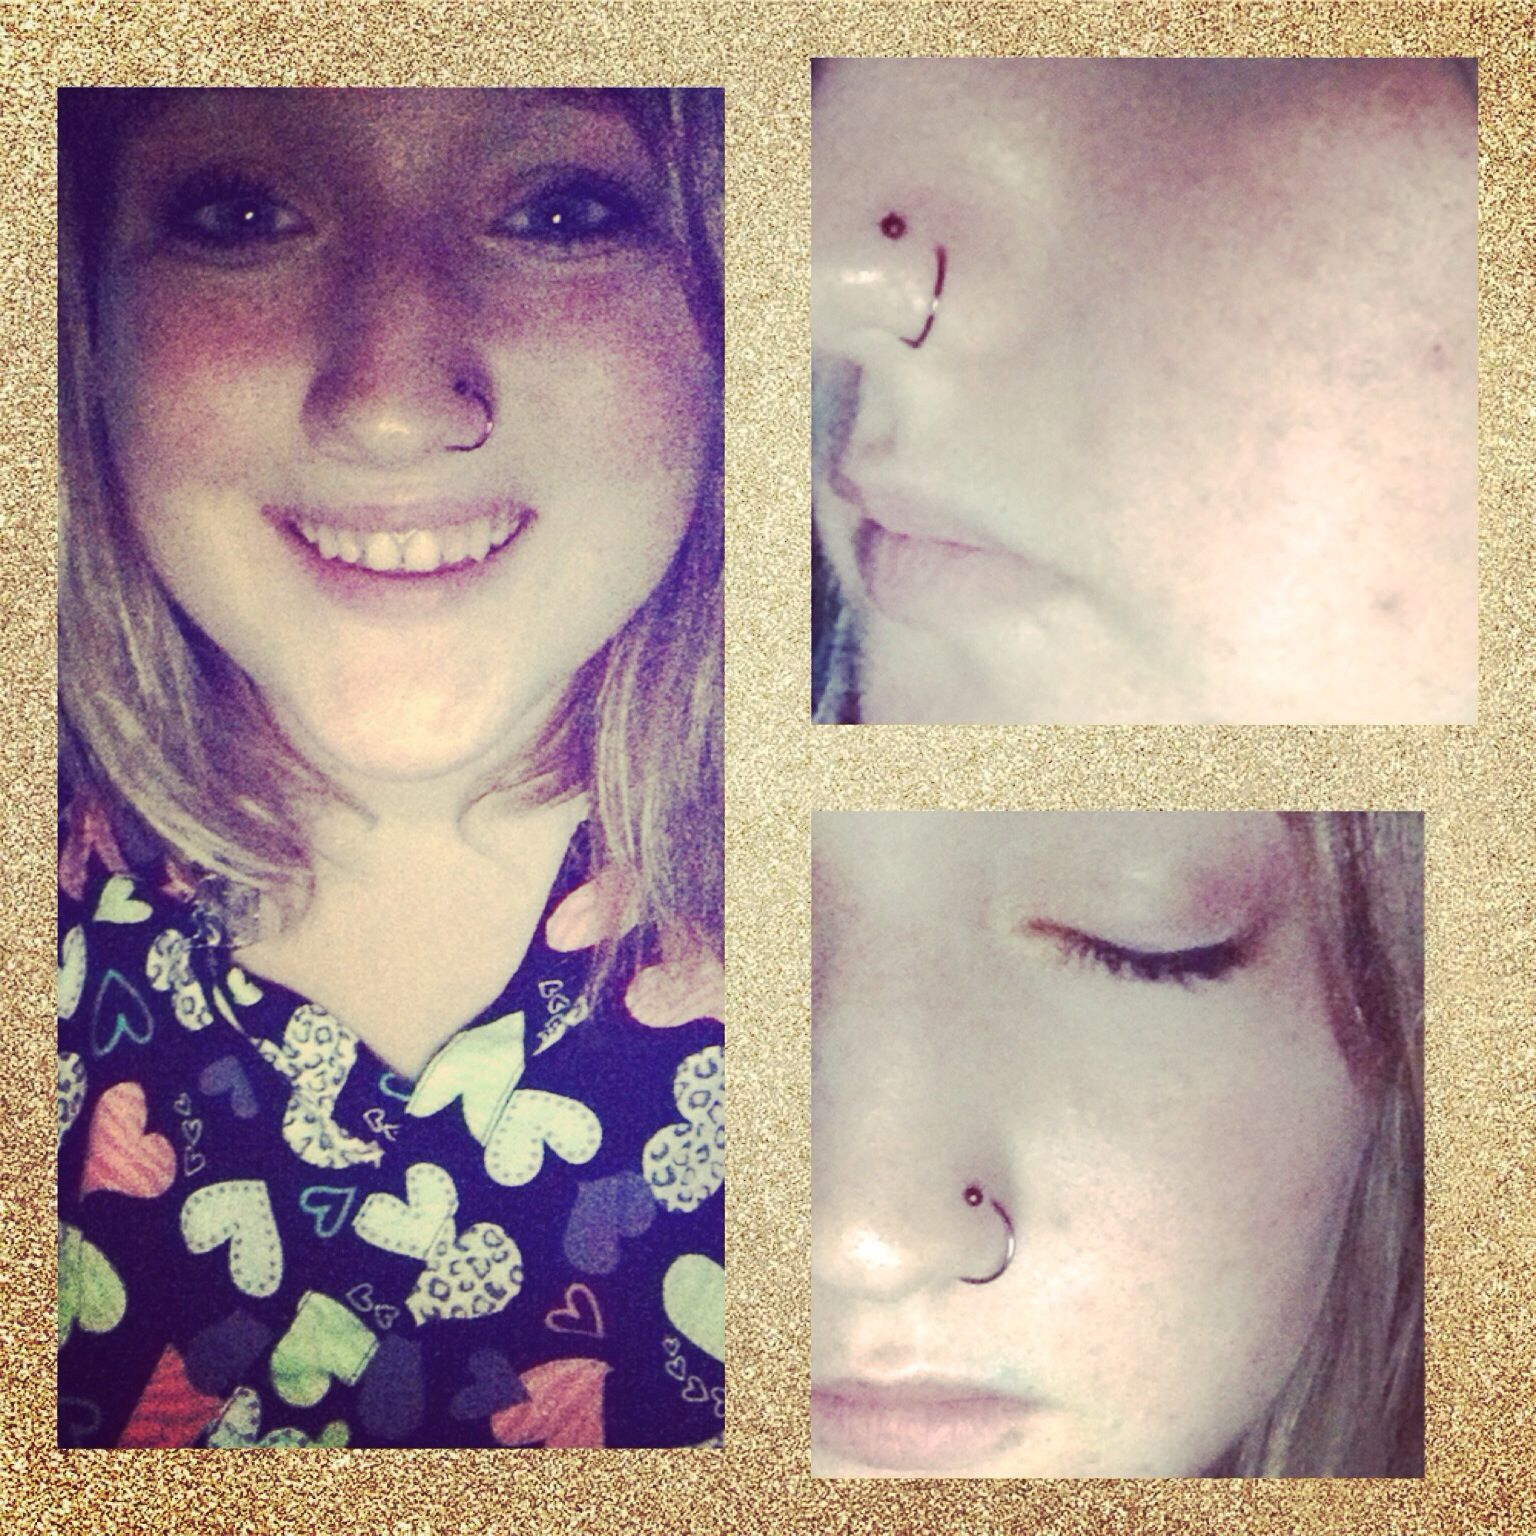 Double nose piercing  Totally in love. #doublenosepiercing